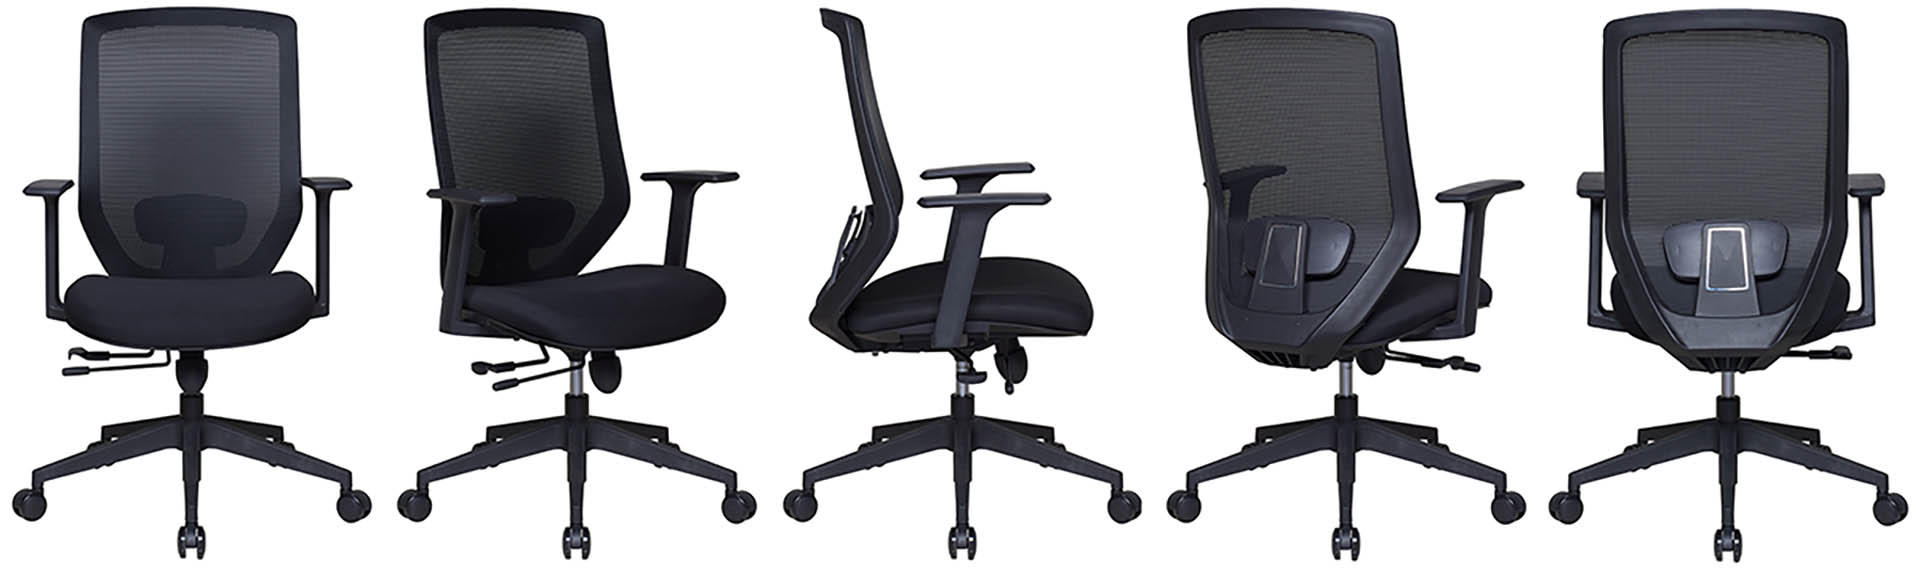 Tevson back computer chair price long-term-use for industry-1